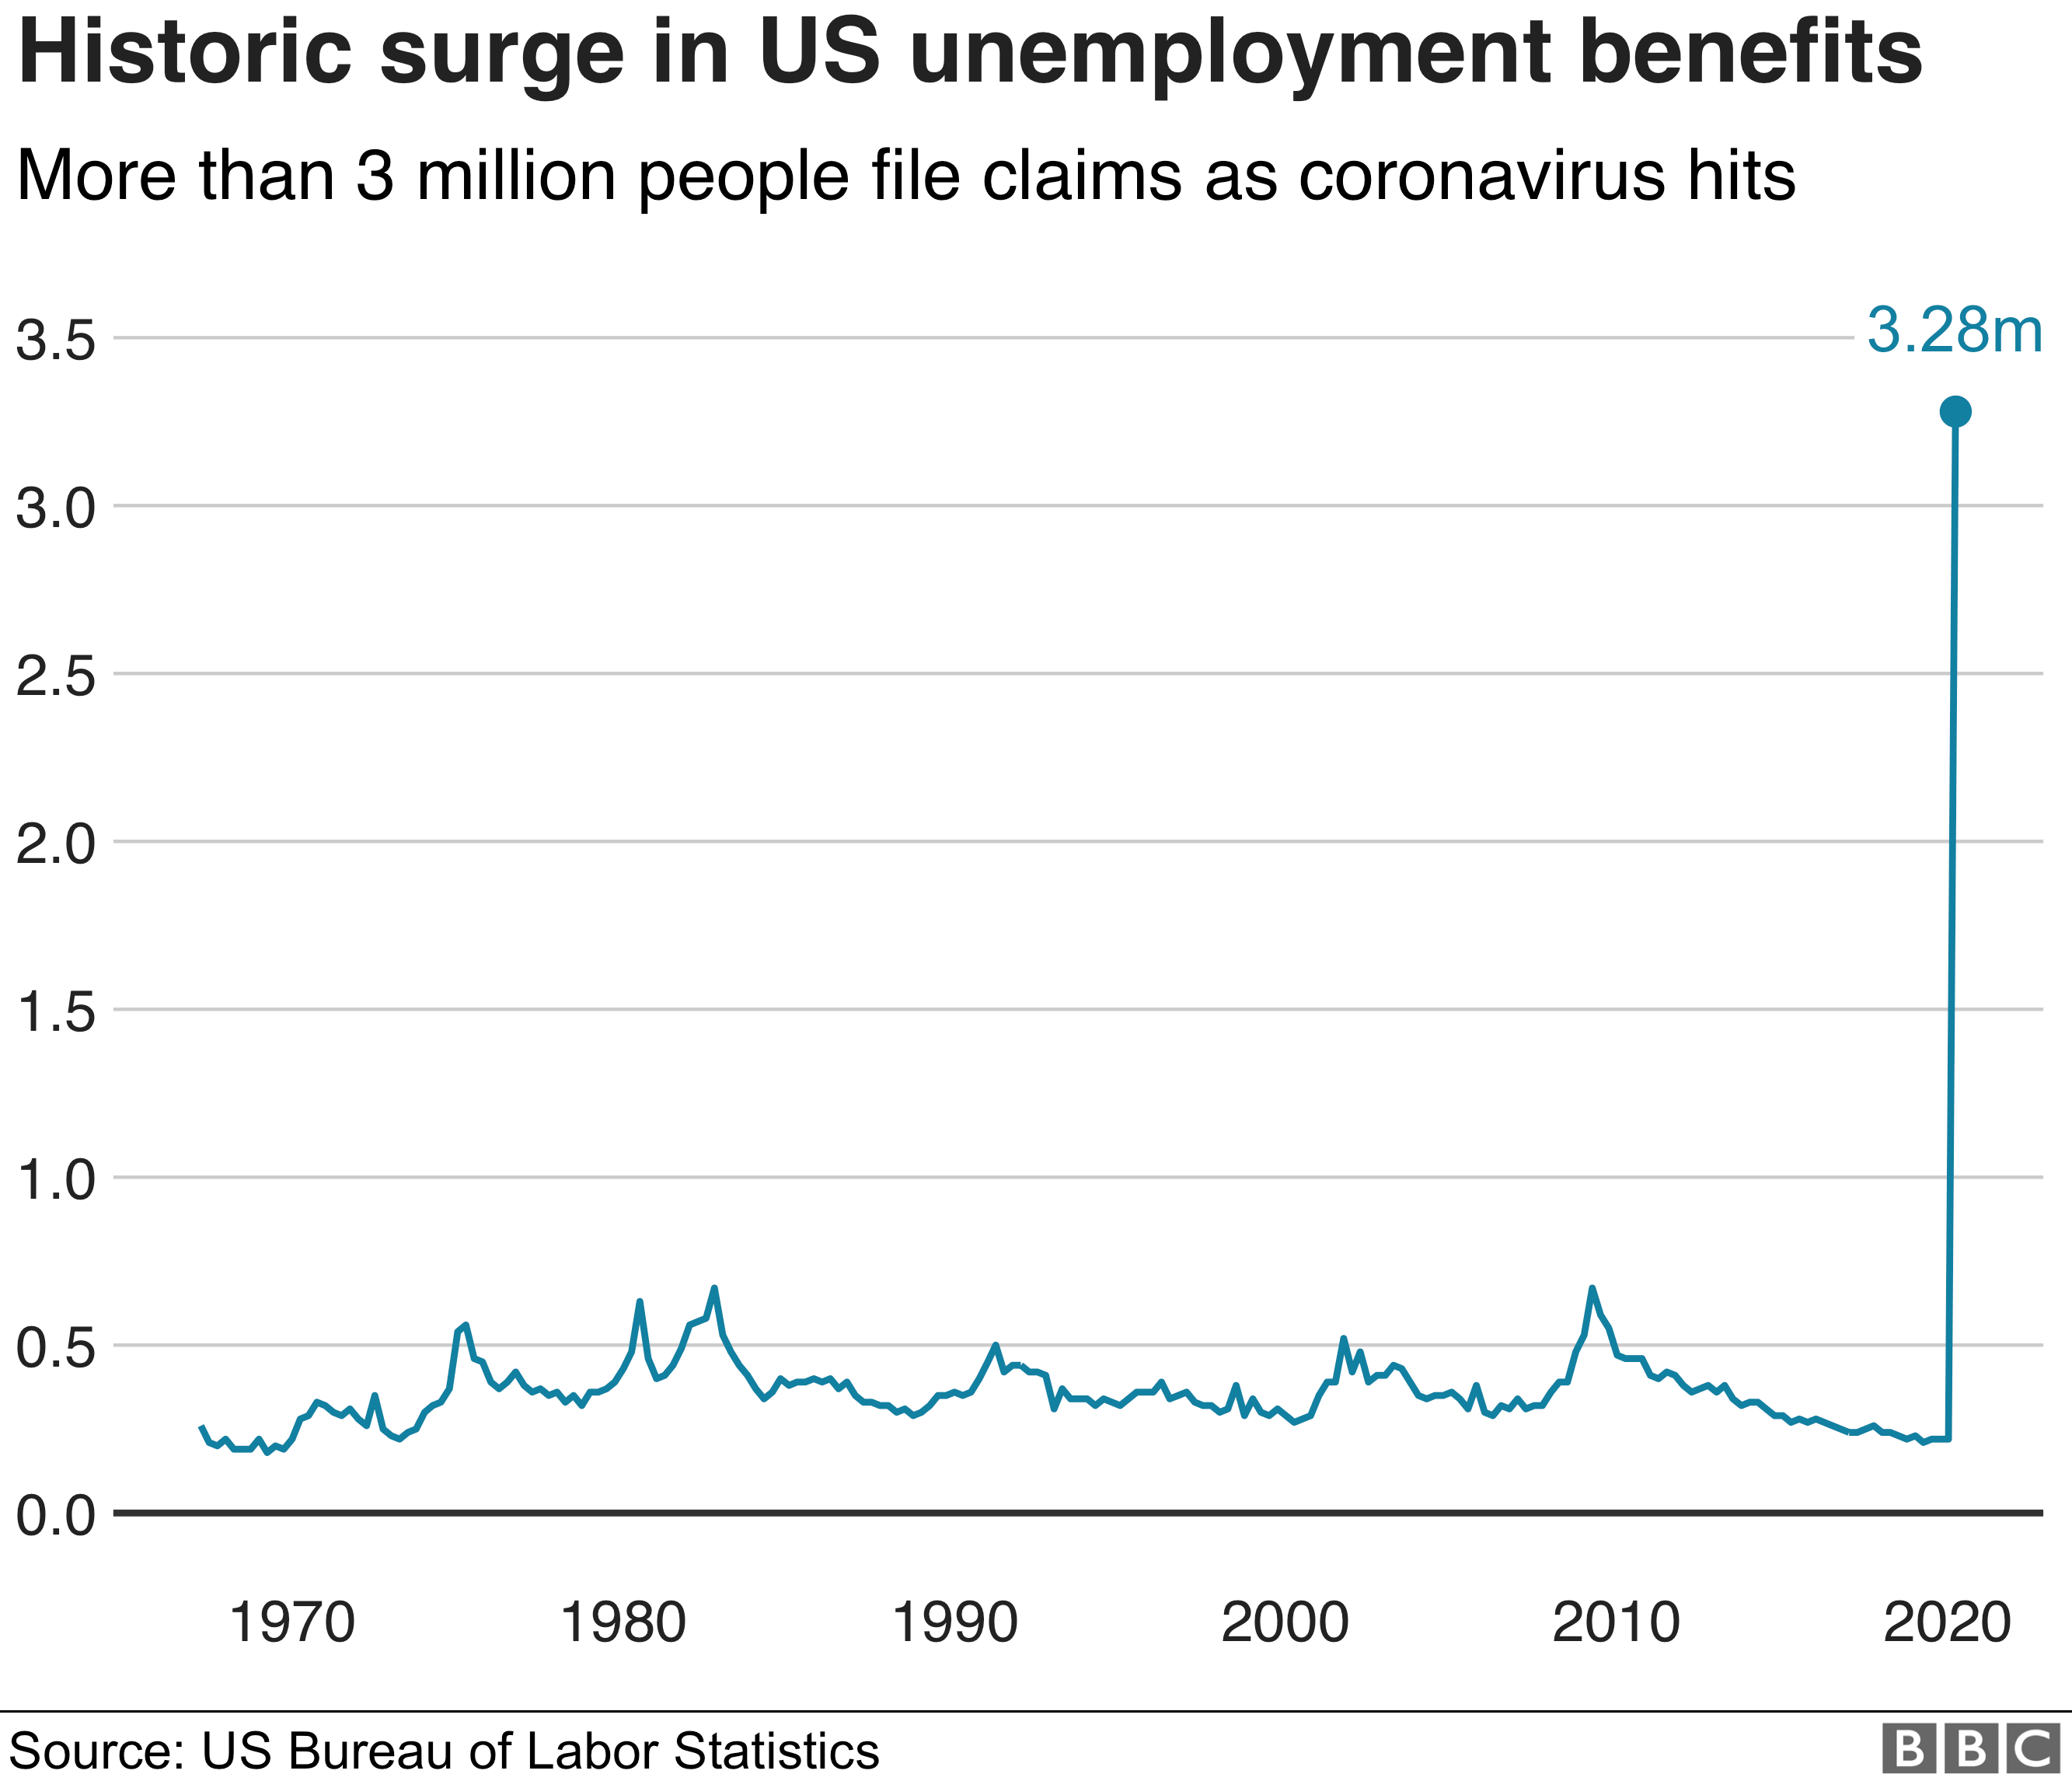 A graphic demonstrating a historic surge in US unemployment benefits